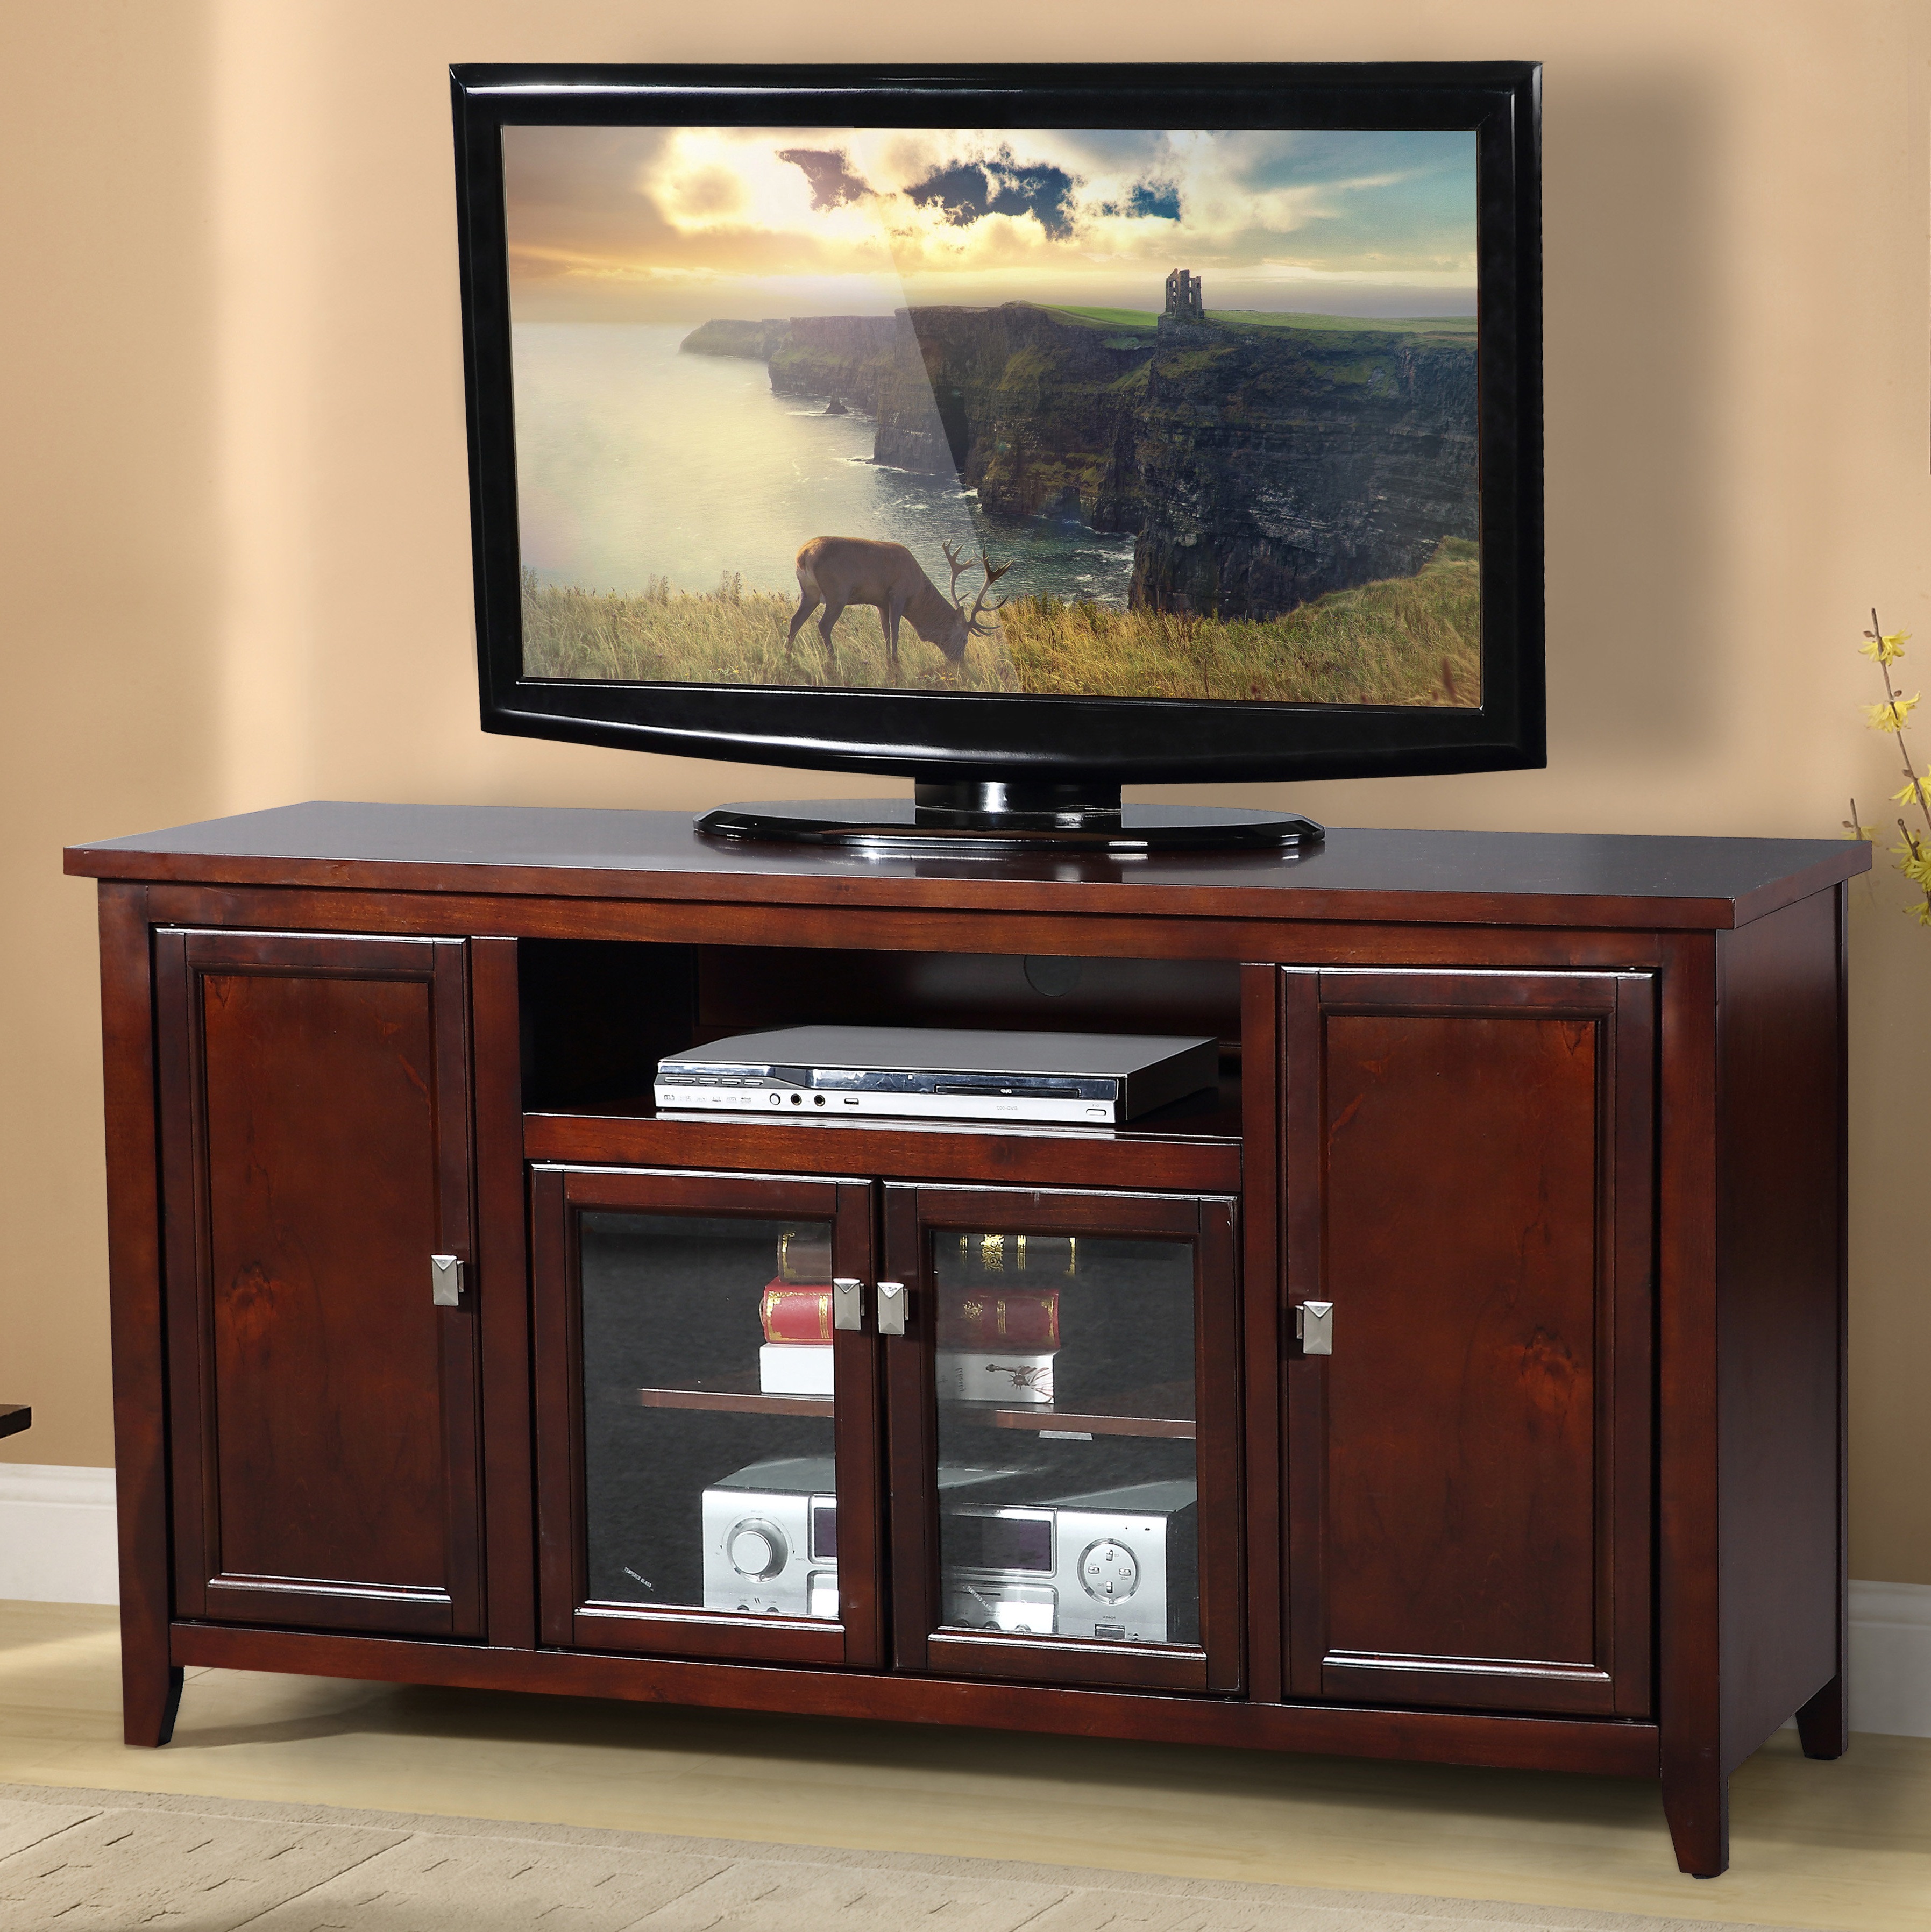 Rustic Tv Stands & Entertainment Centers You'll Love | Wayfair For Walton 74 Inch Open Tv Stands (View 20 of 20)